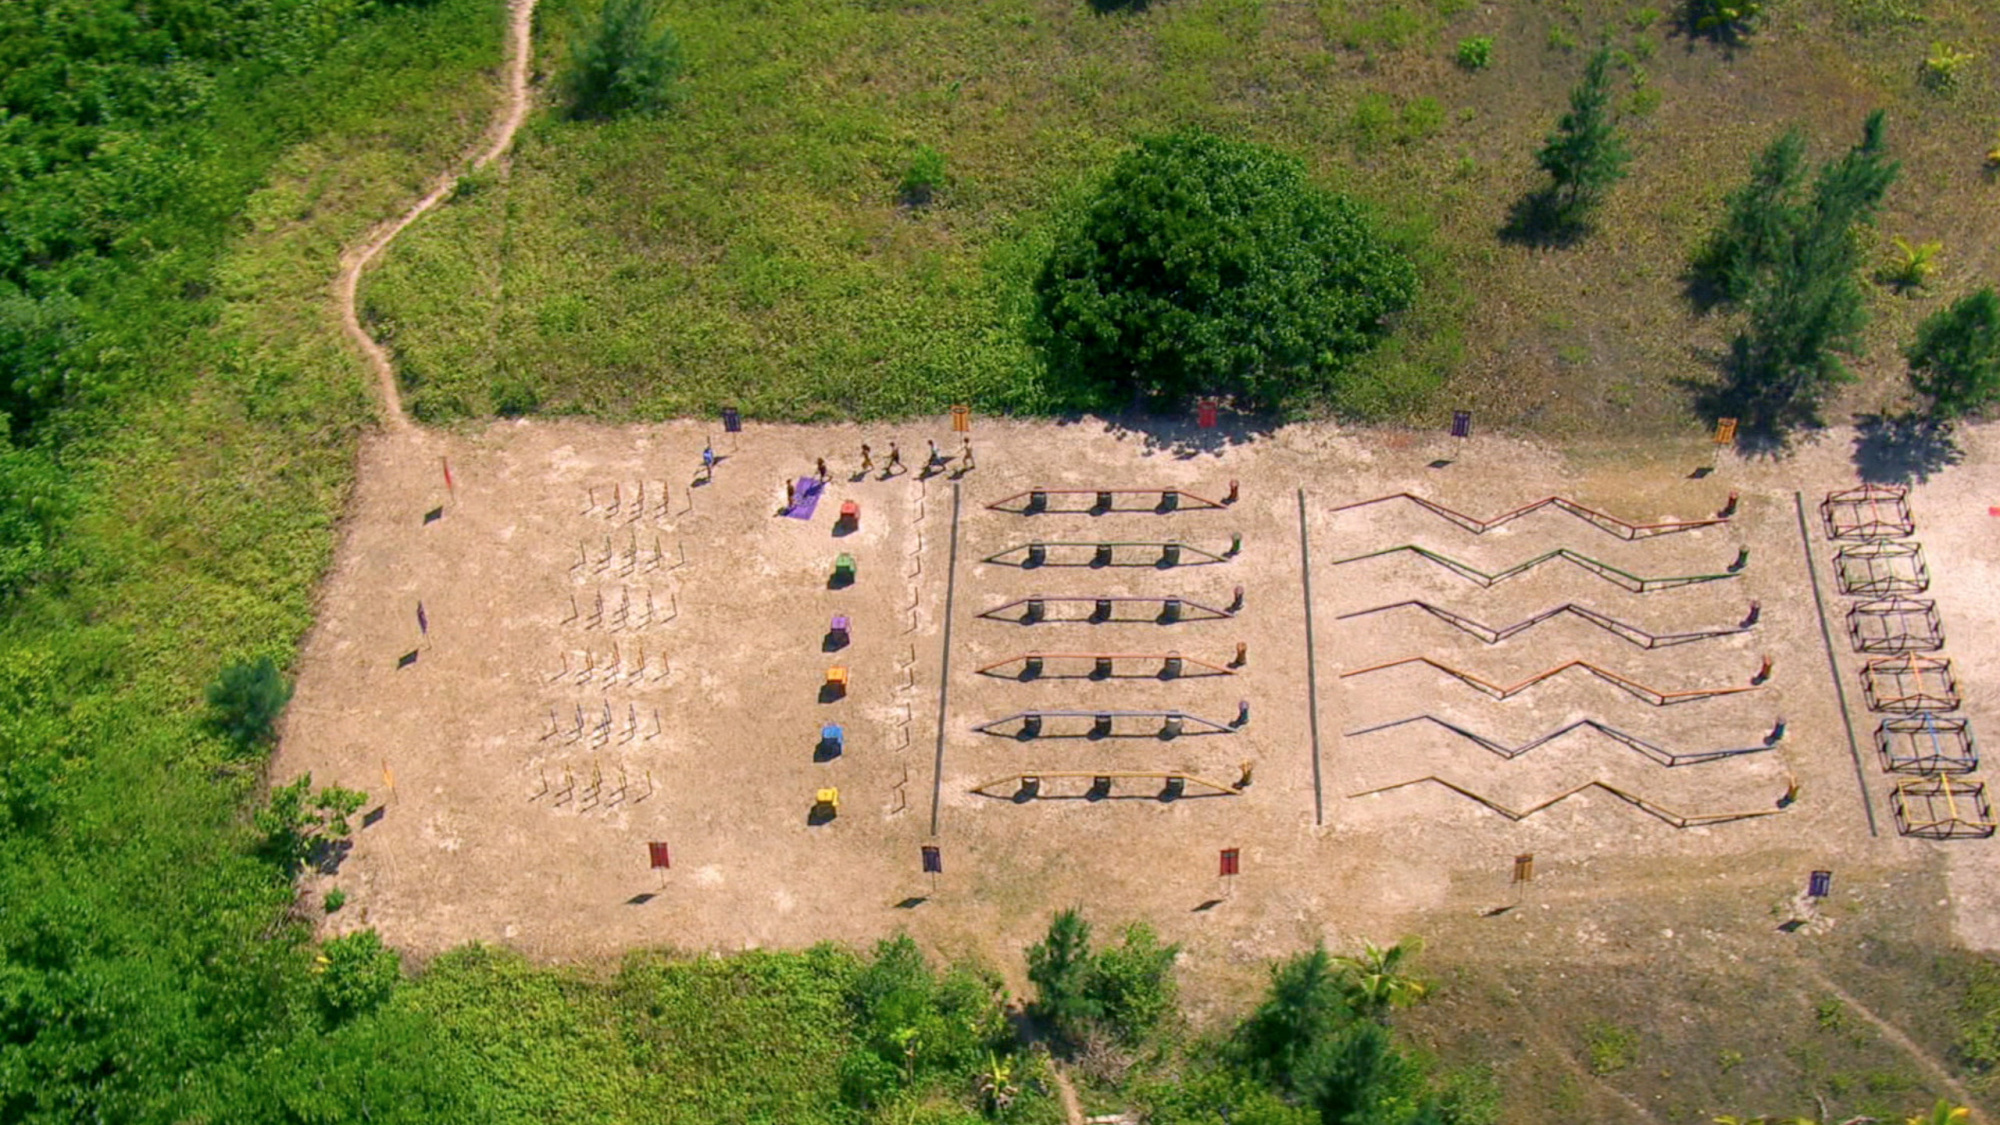 Immunity Challenge course in Season 27 Episode 12